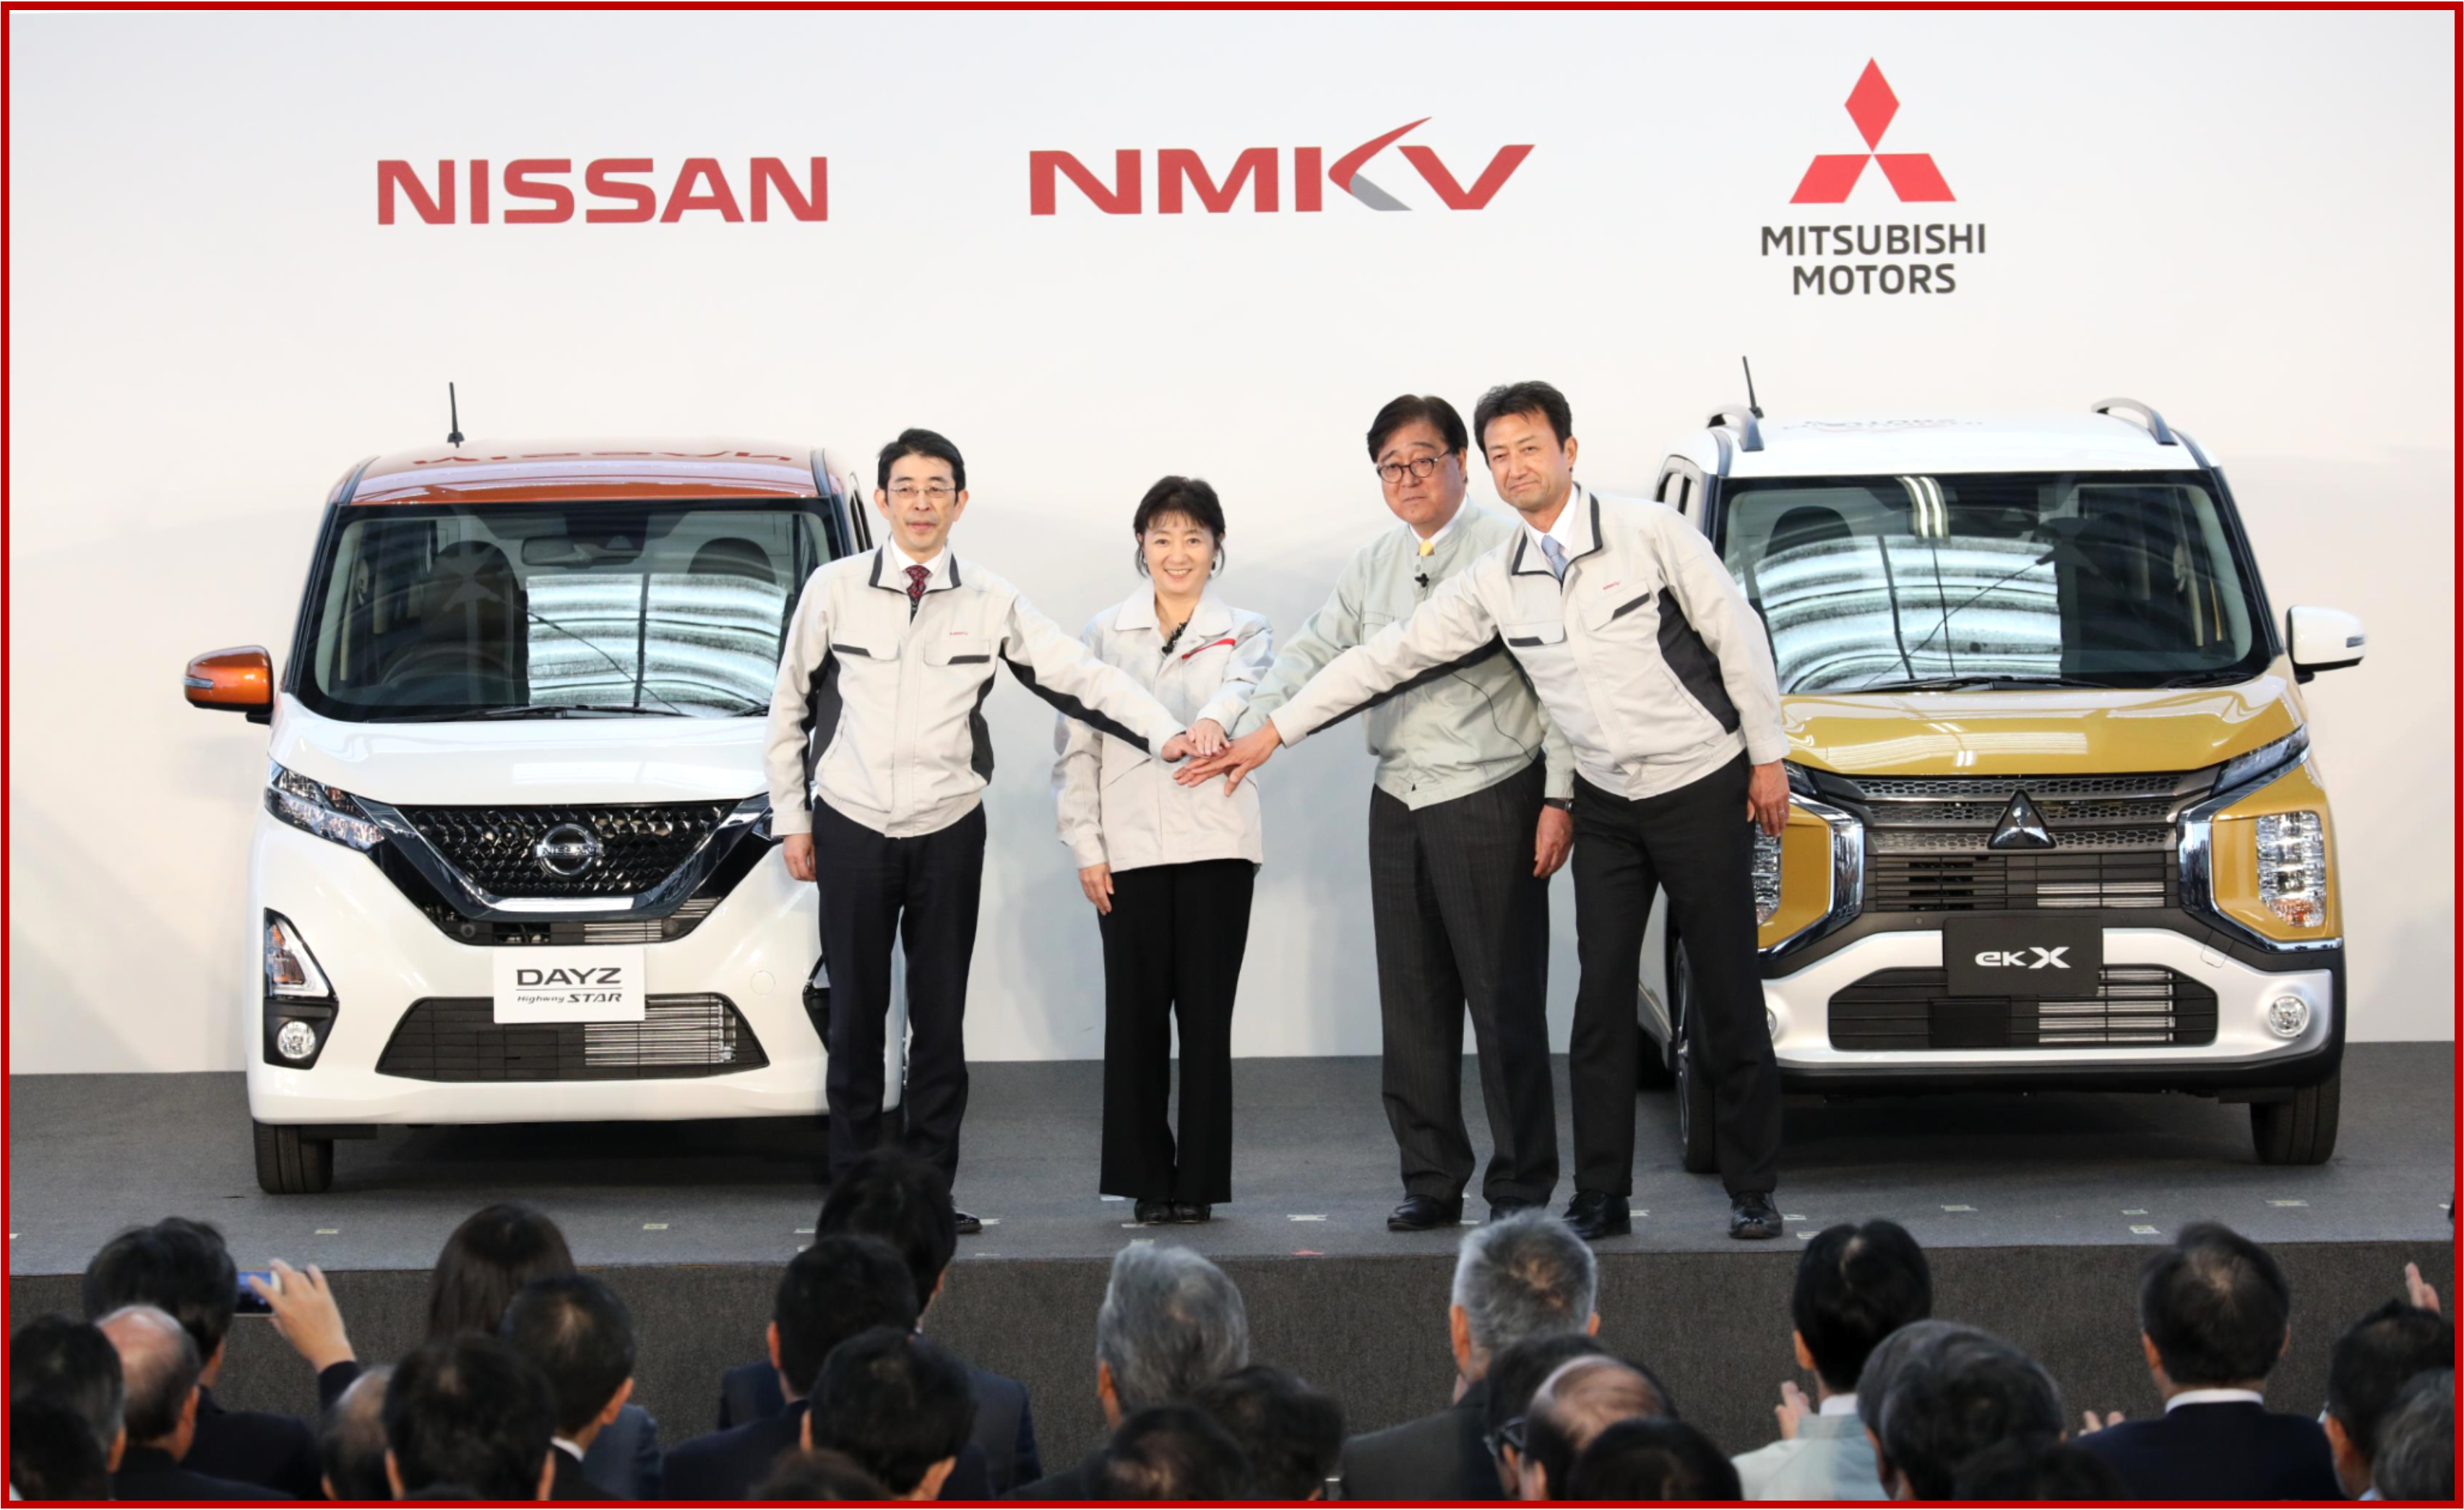 AutoInformed.com on Production of Mitsubishi eK wagon and Nissan Dayz at Mitsubishi's Mizushima Plant in Kurashiki, Japan.